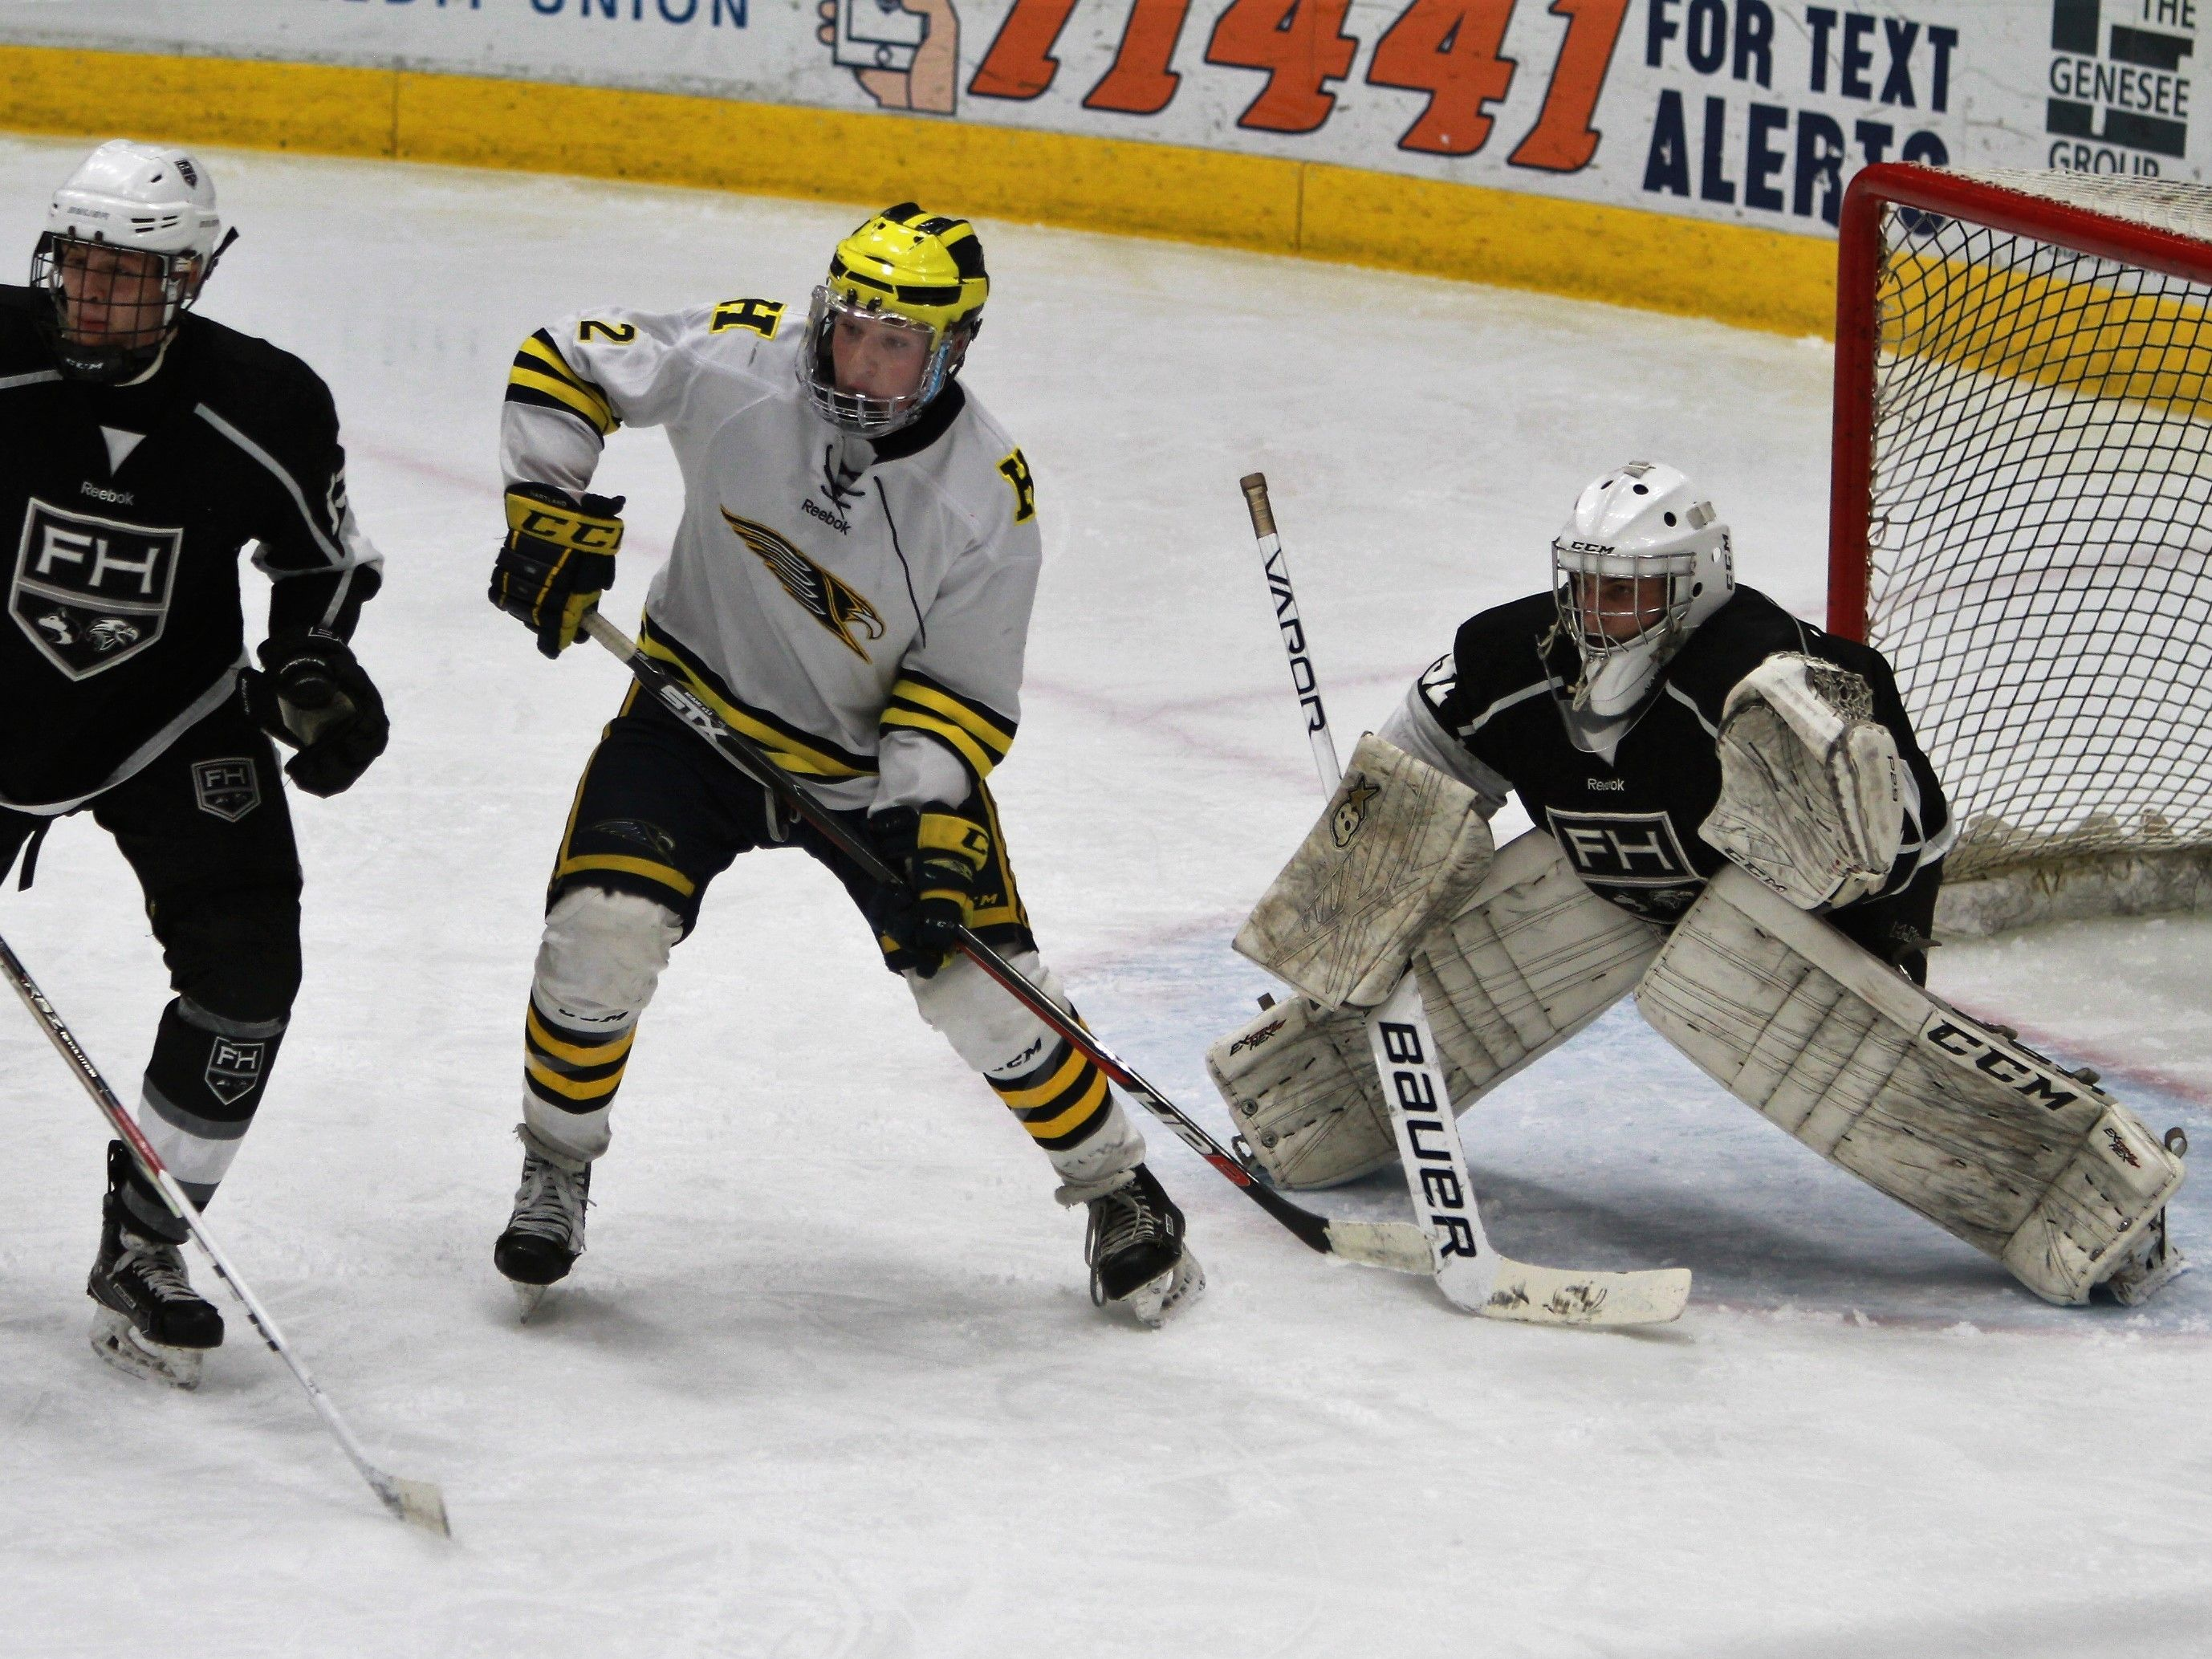 Hartland's Kieran Carlile (2) camps out in front of Forest Hills Eastern goalie Brenden Bogema during a power play in the state Division 2 hockey quarterfinals on Tuesday, March 5, 2019.